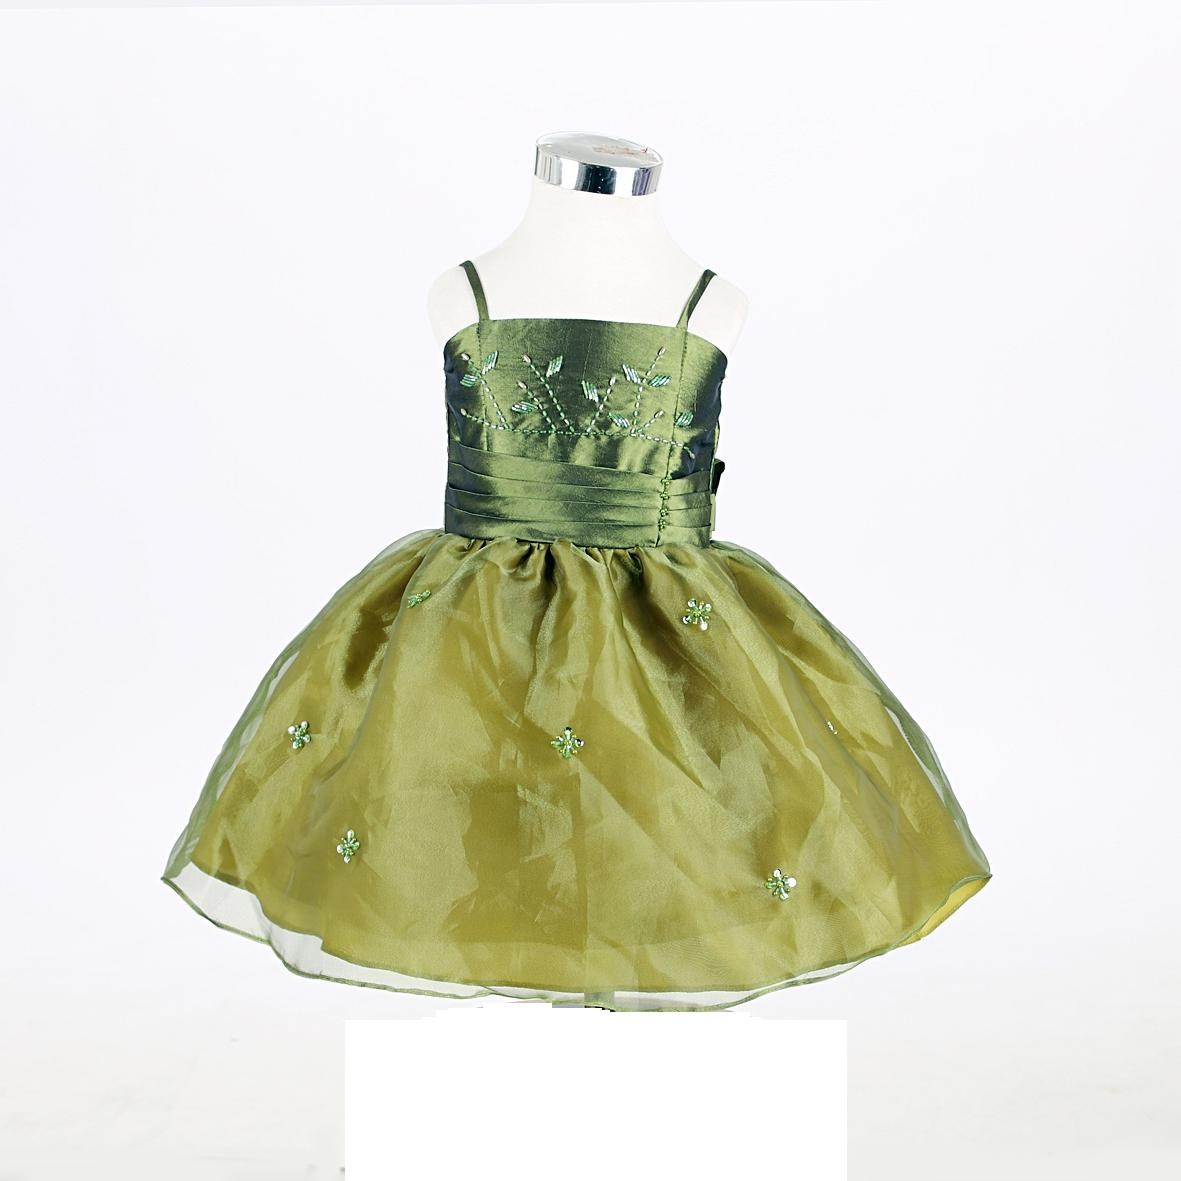 green infant dress with bolero jacket